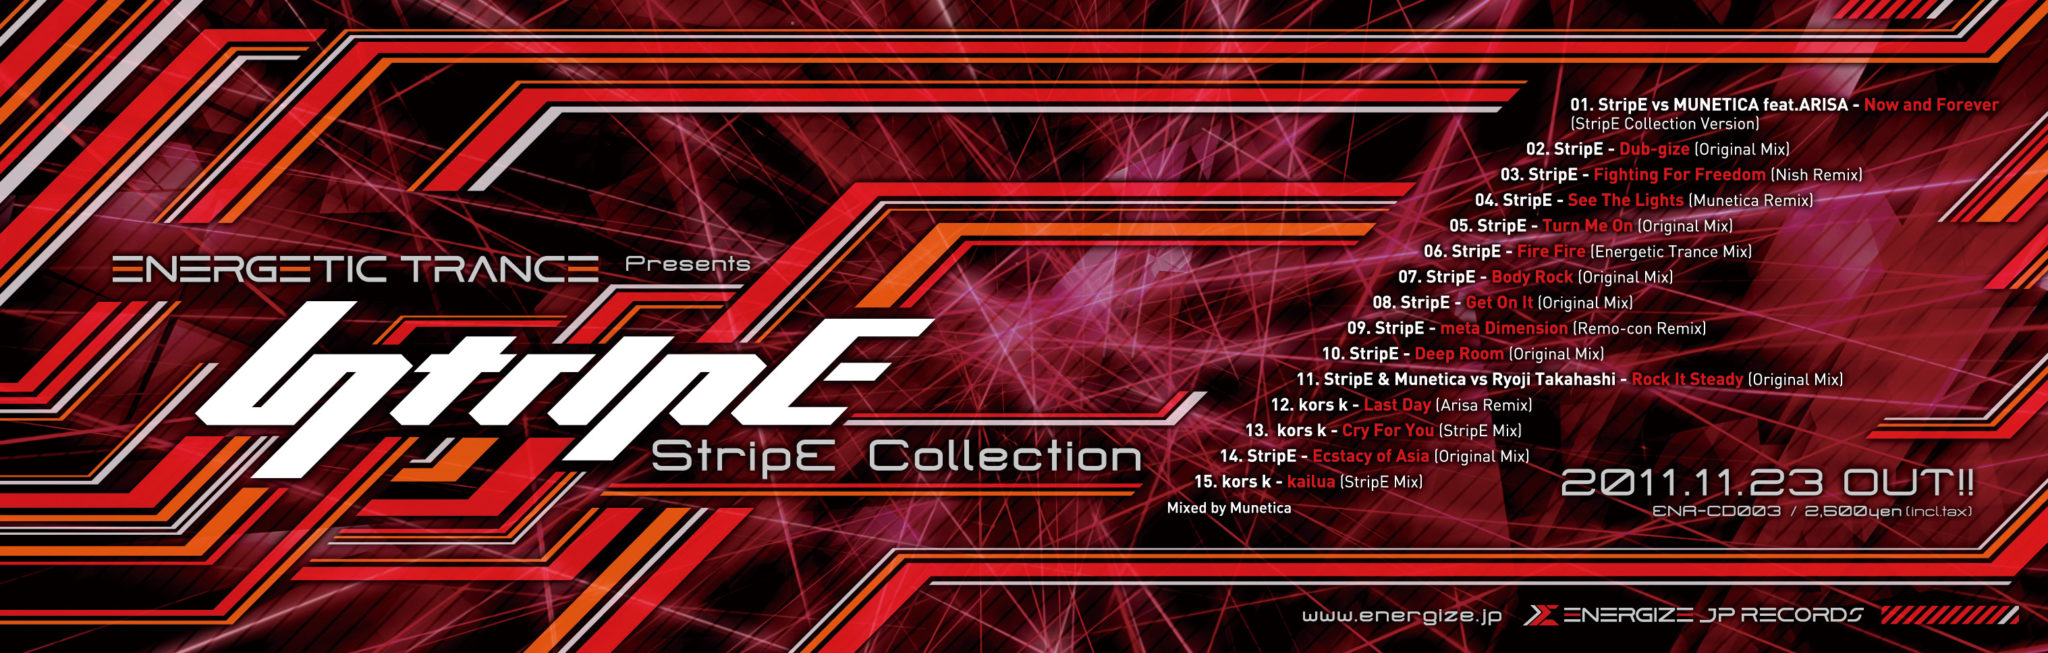 Energetic Trance Presents StripE Collection Sticker